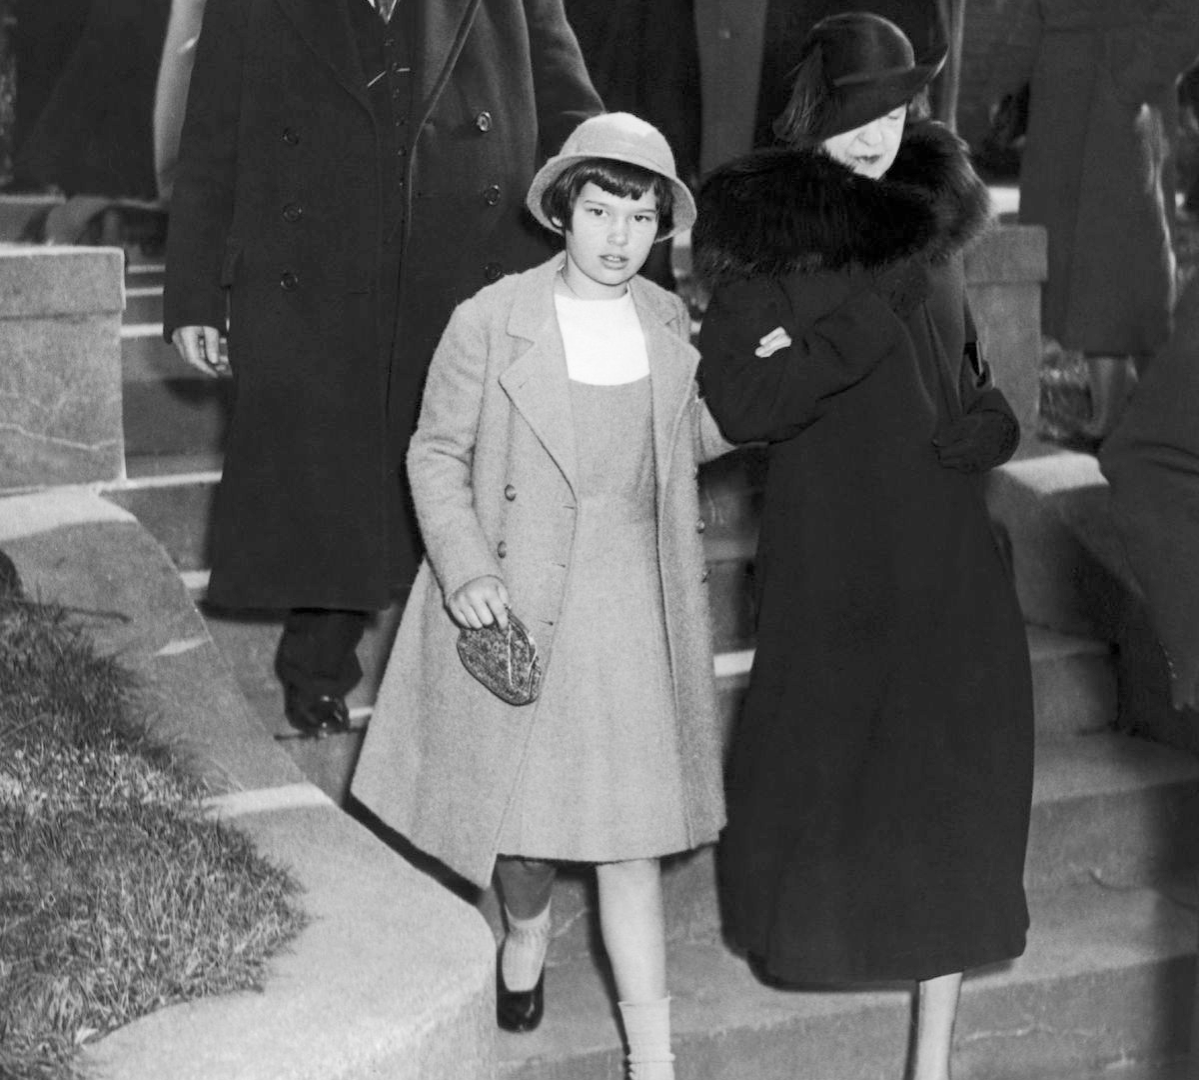 Gloria Vanderbilt In Long Island With Her Aunt, Gertrude Vanderbilt-Whitney, Who Had Custody Of The Young Heiress, On December 2, 1934.